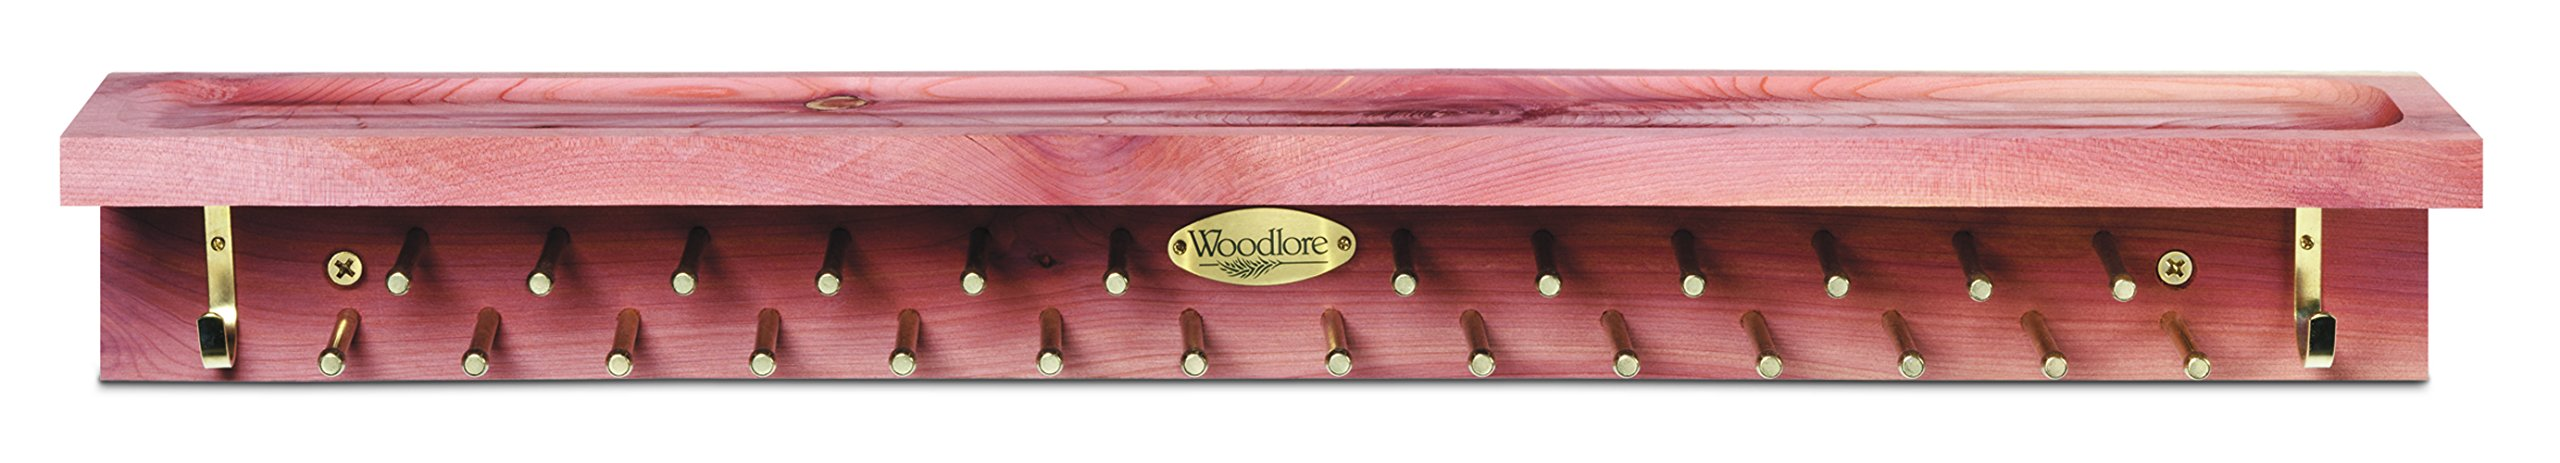 Woodlore 82027 Accessory Mate by Woodlore